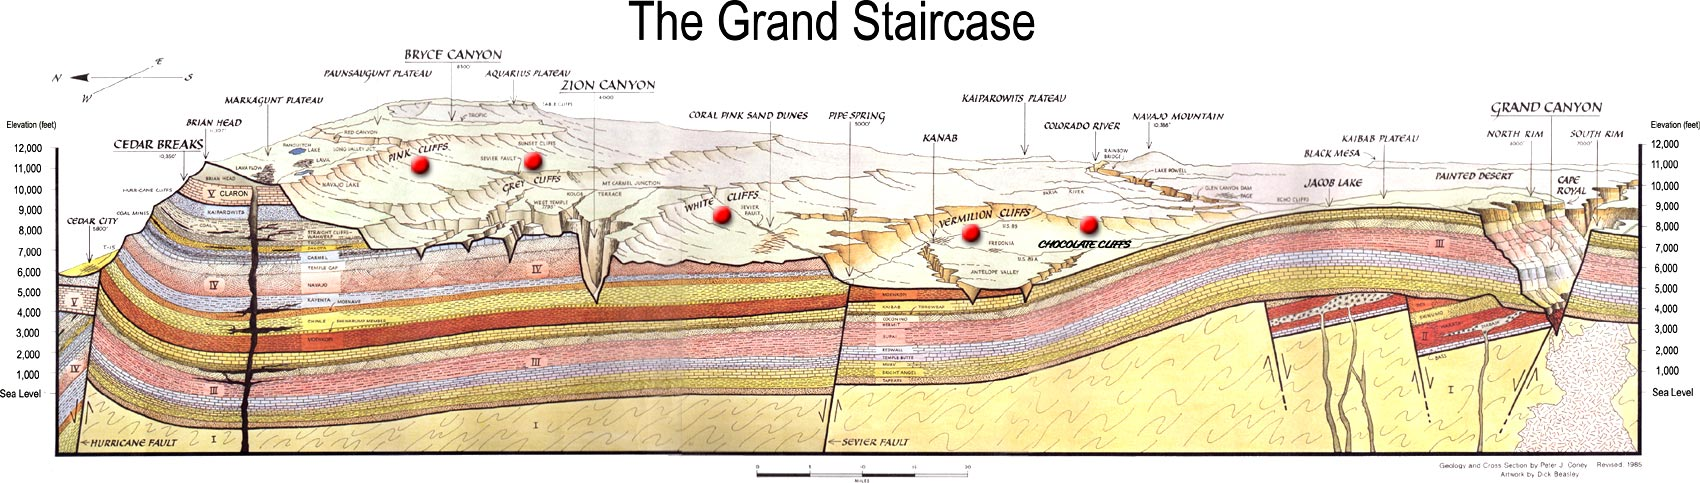 Grand Staircase Wikipedia